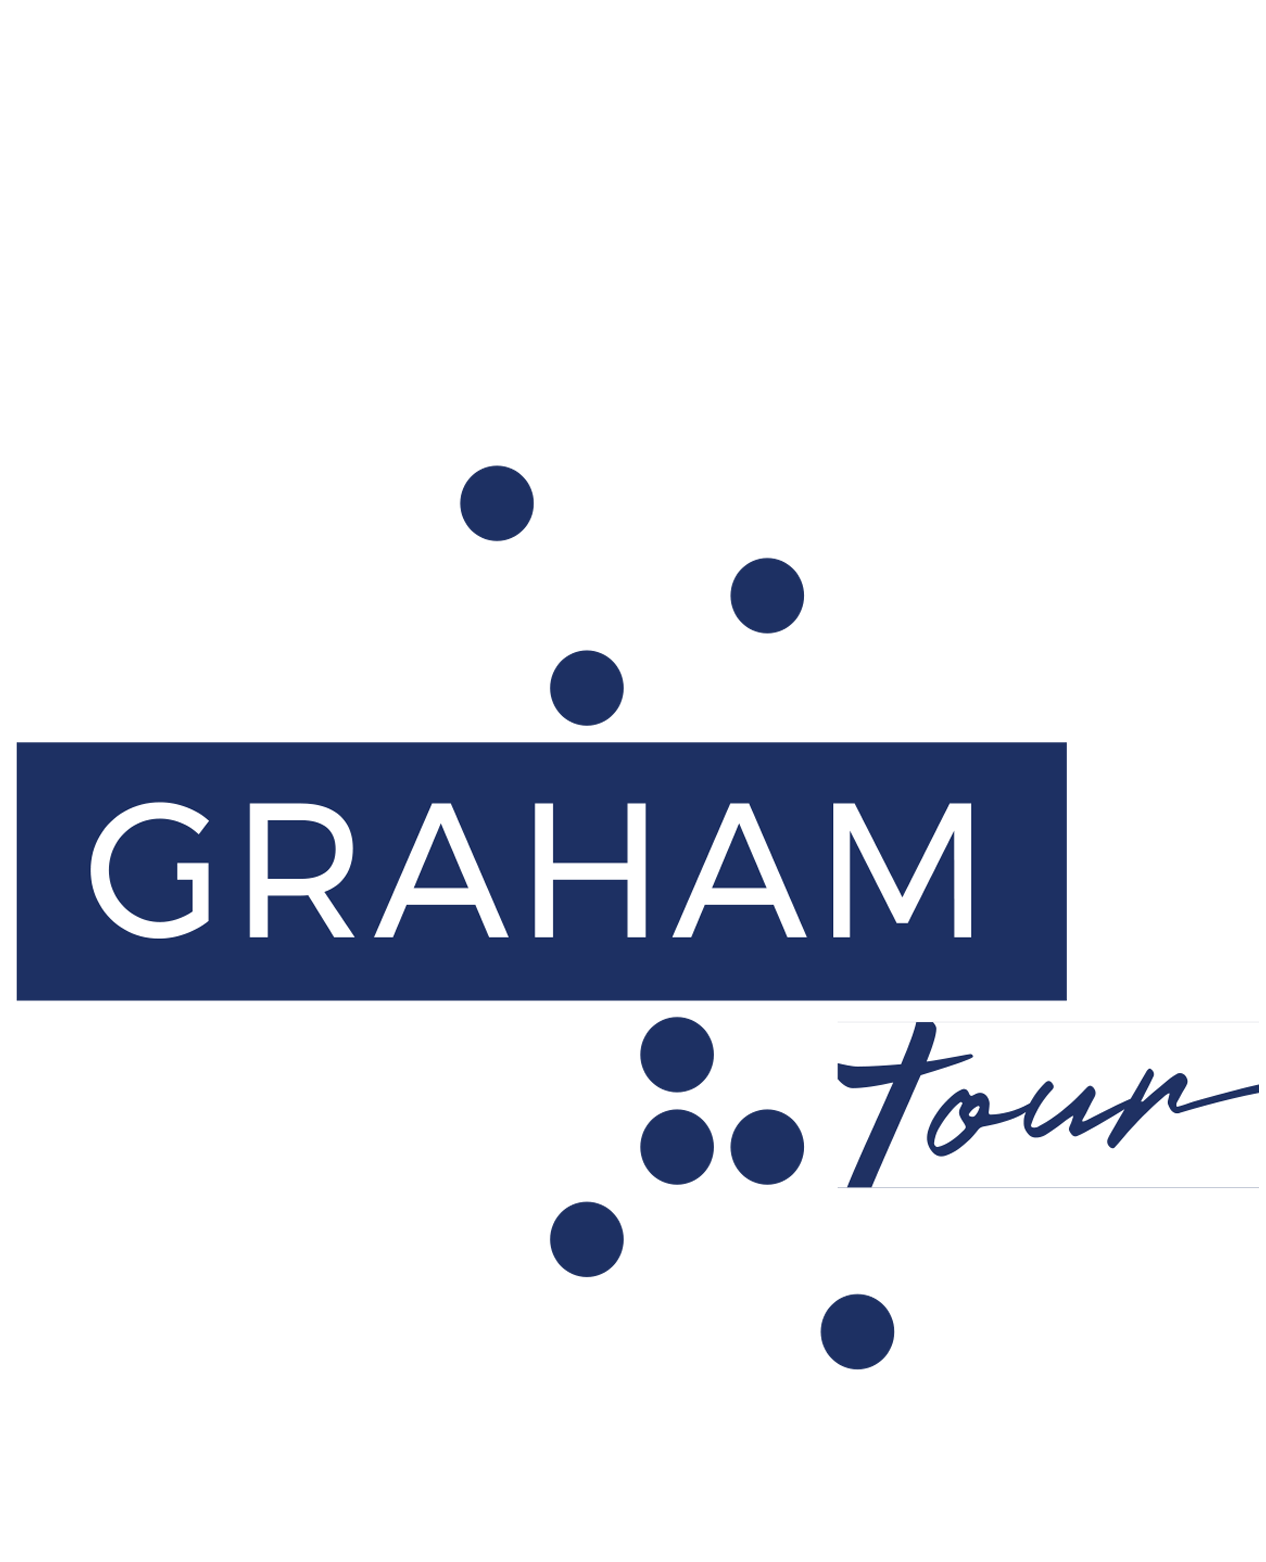 Graham Tour UK